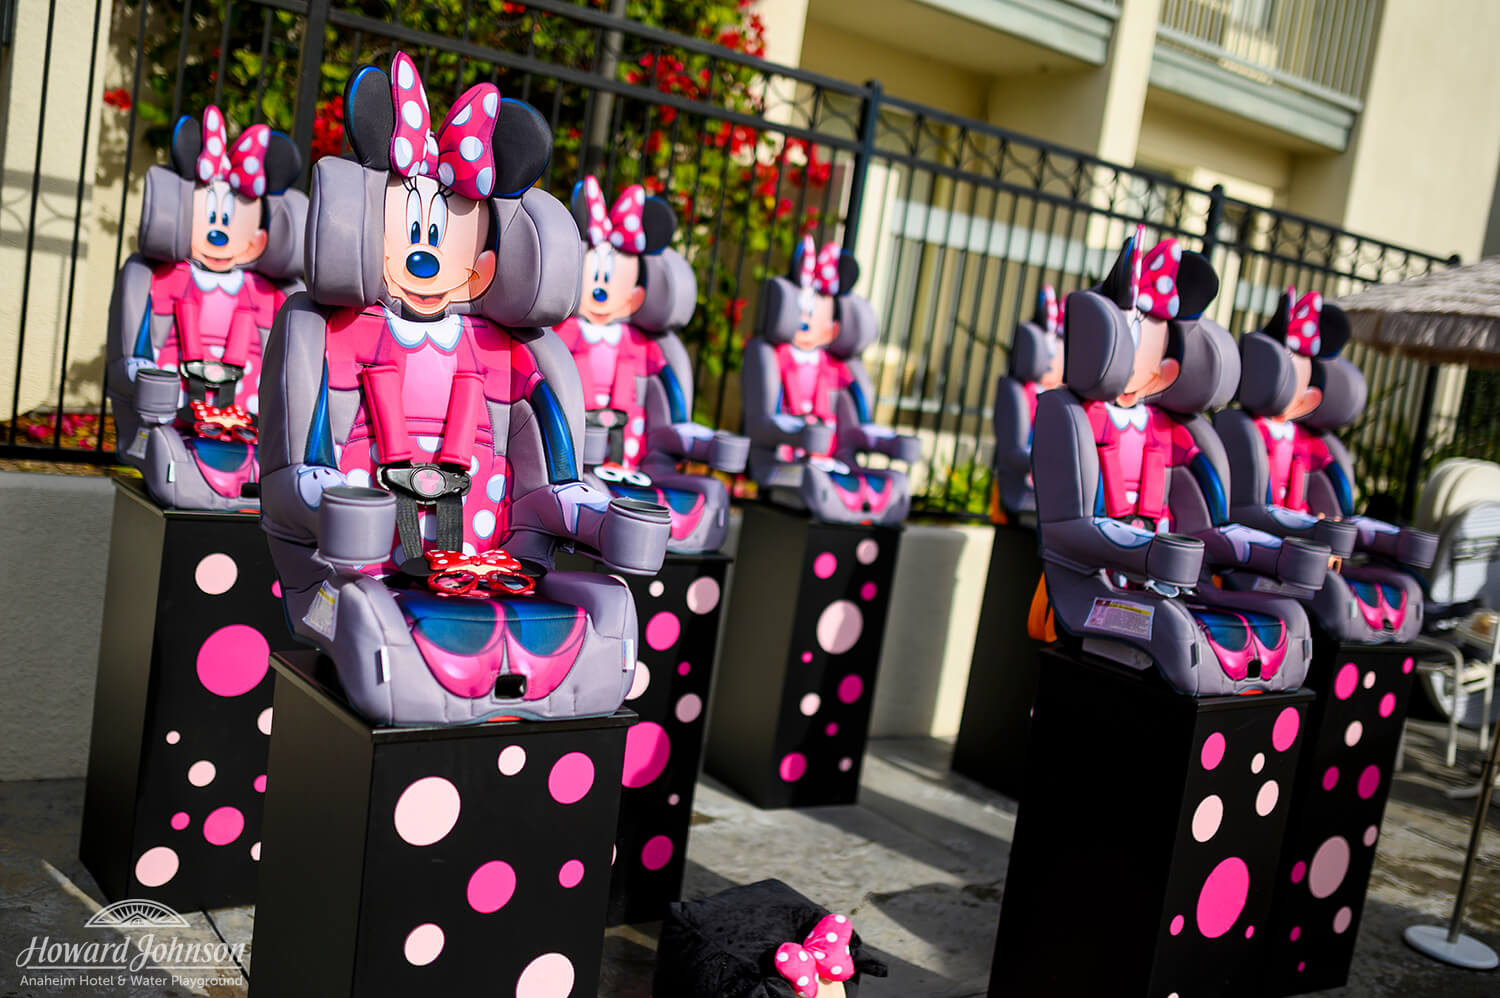 Minnie Mouse car seats are displayed on polka dot stands